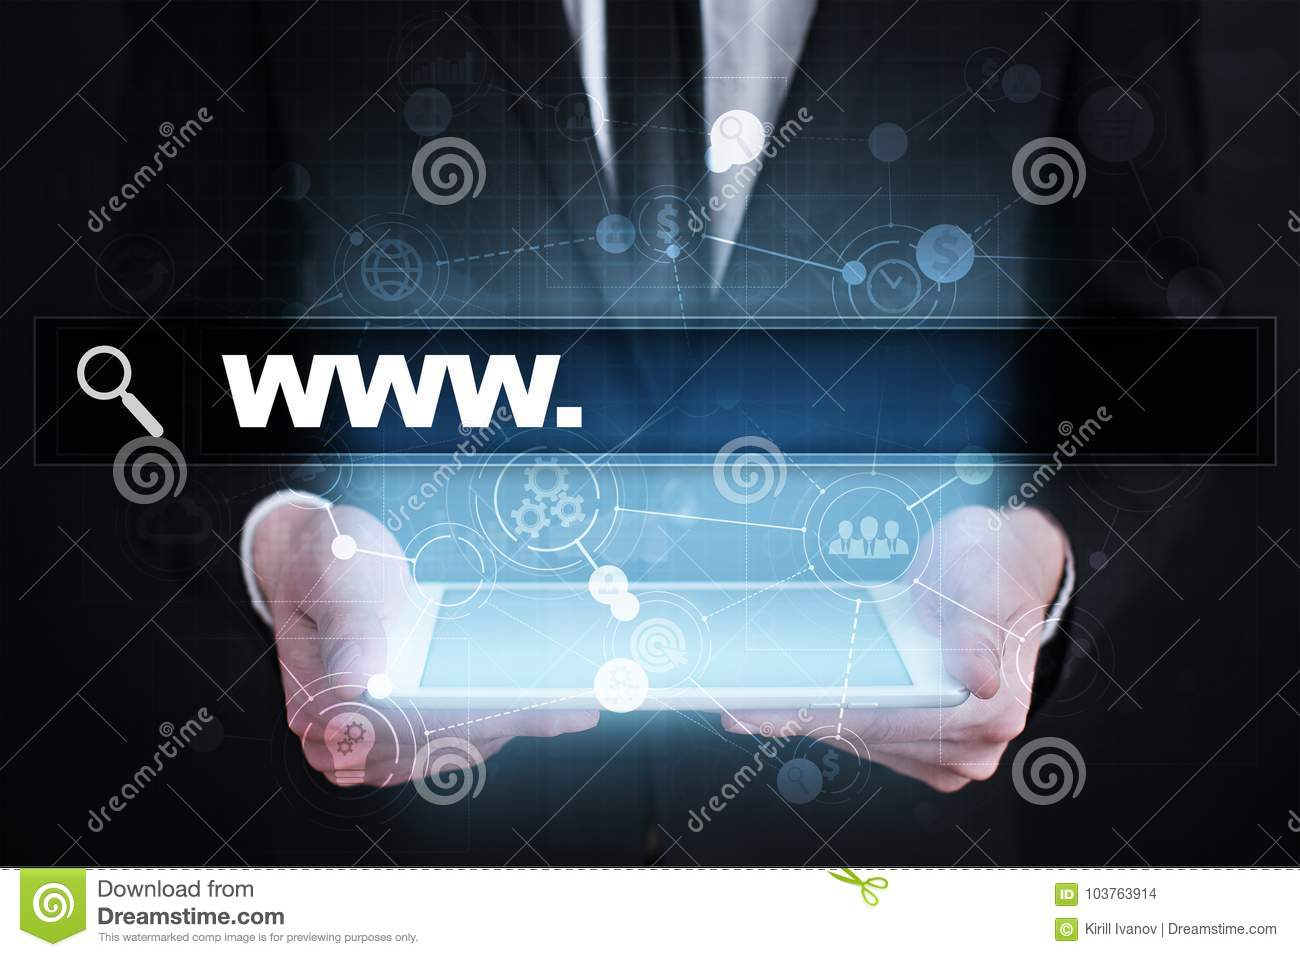 Search bar with www text. Web site, URL. Digital marketing.